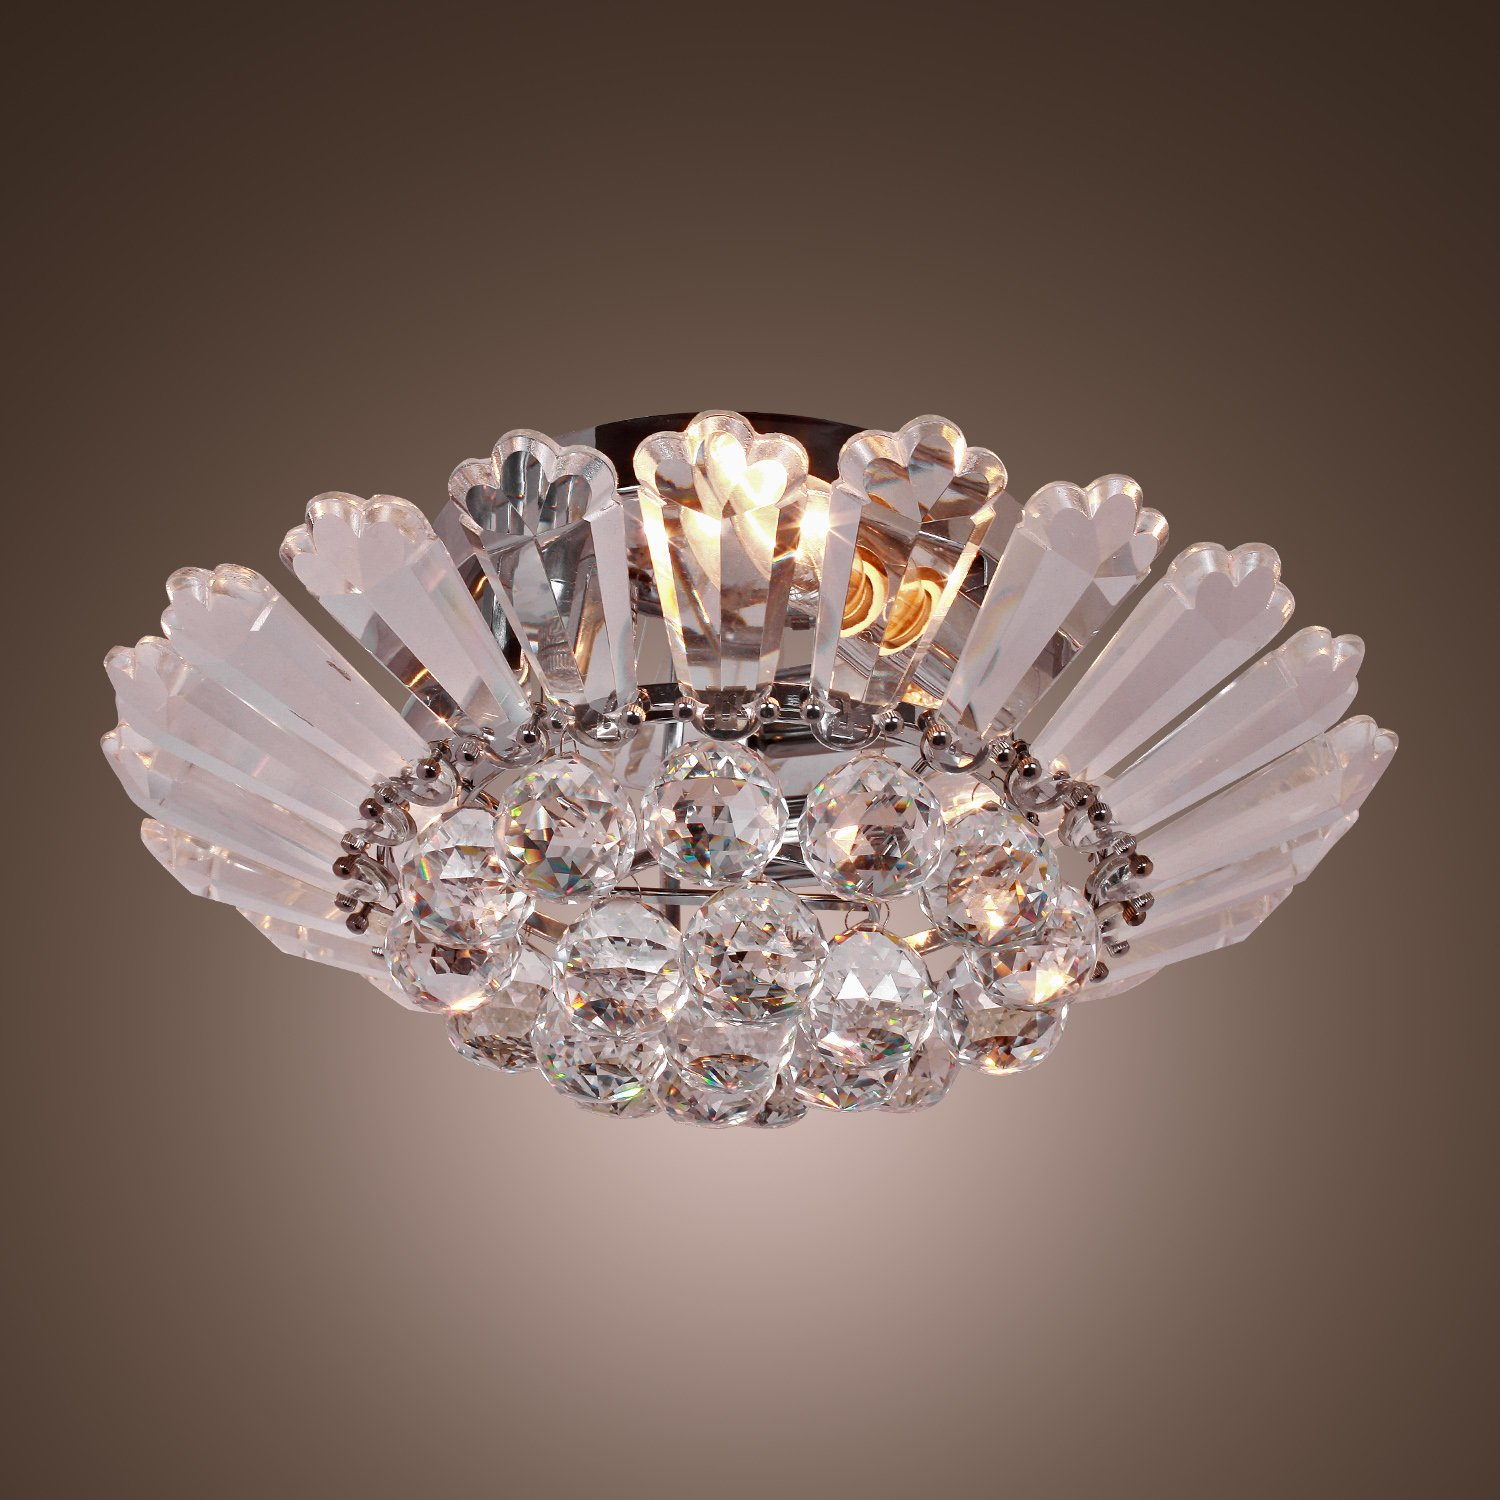 LightInTheBox Modern Semi Flush Mount in Crystal Feature Home